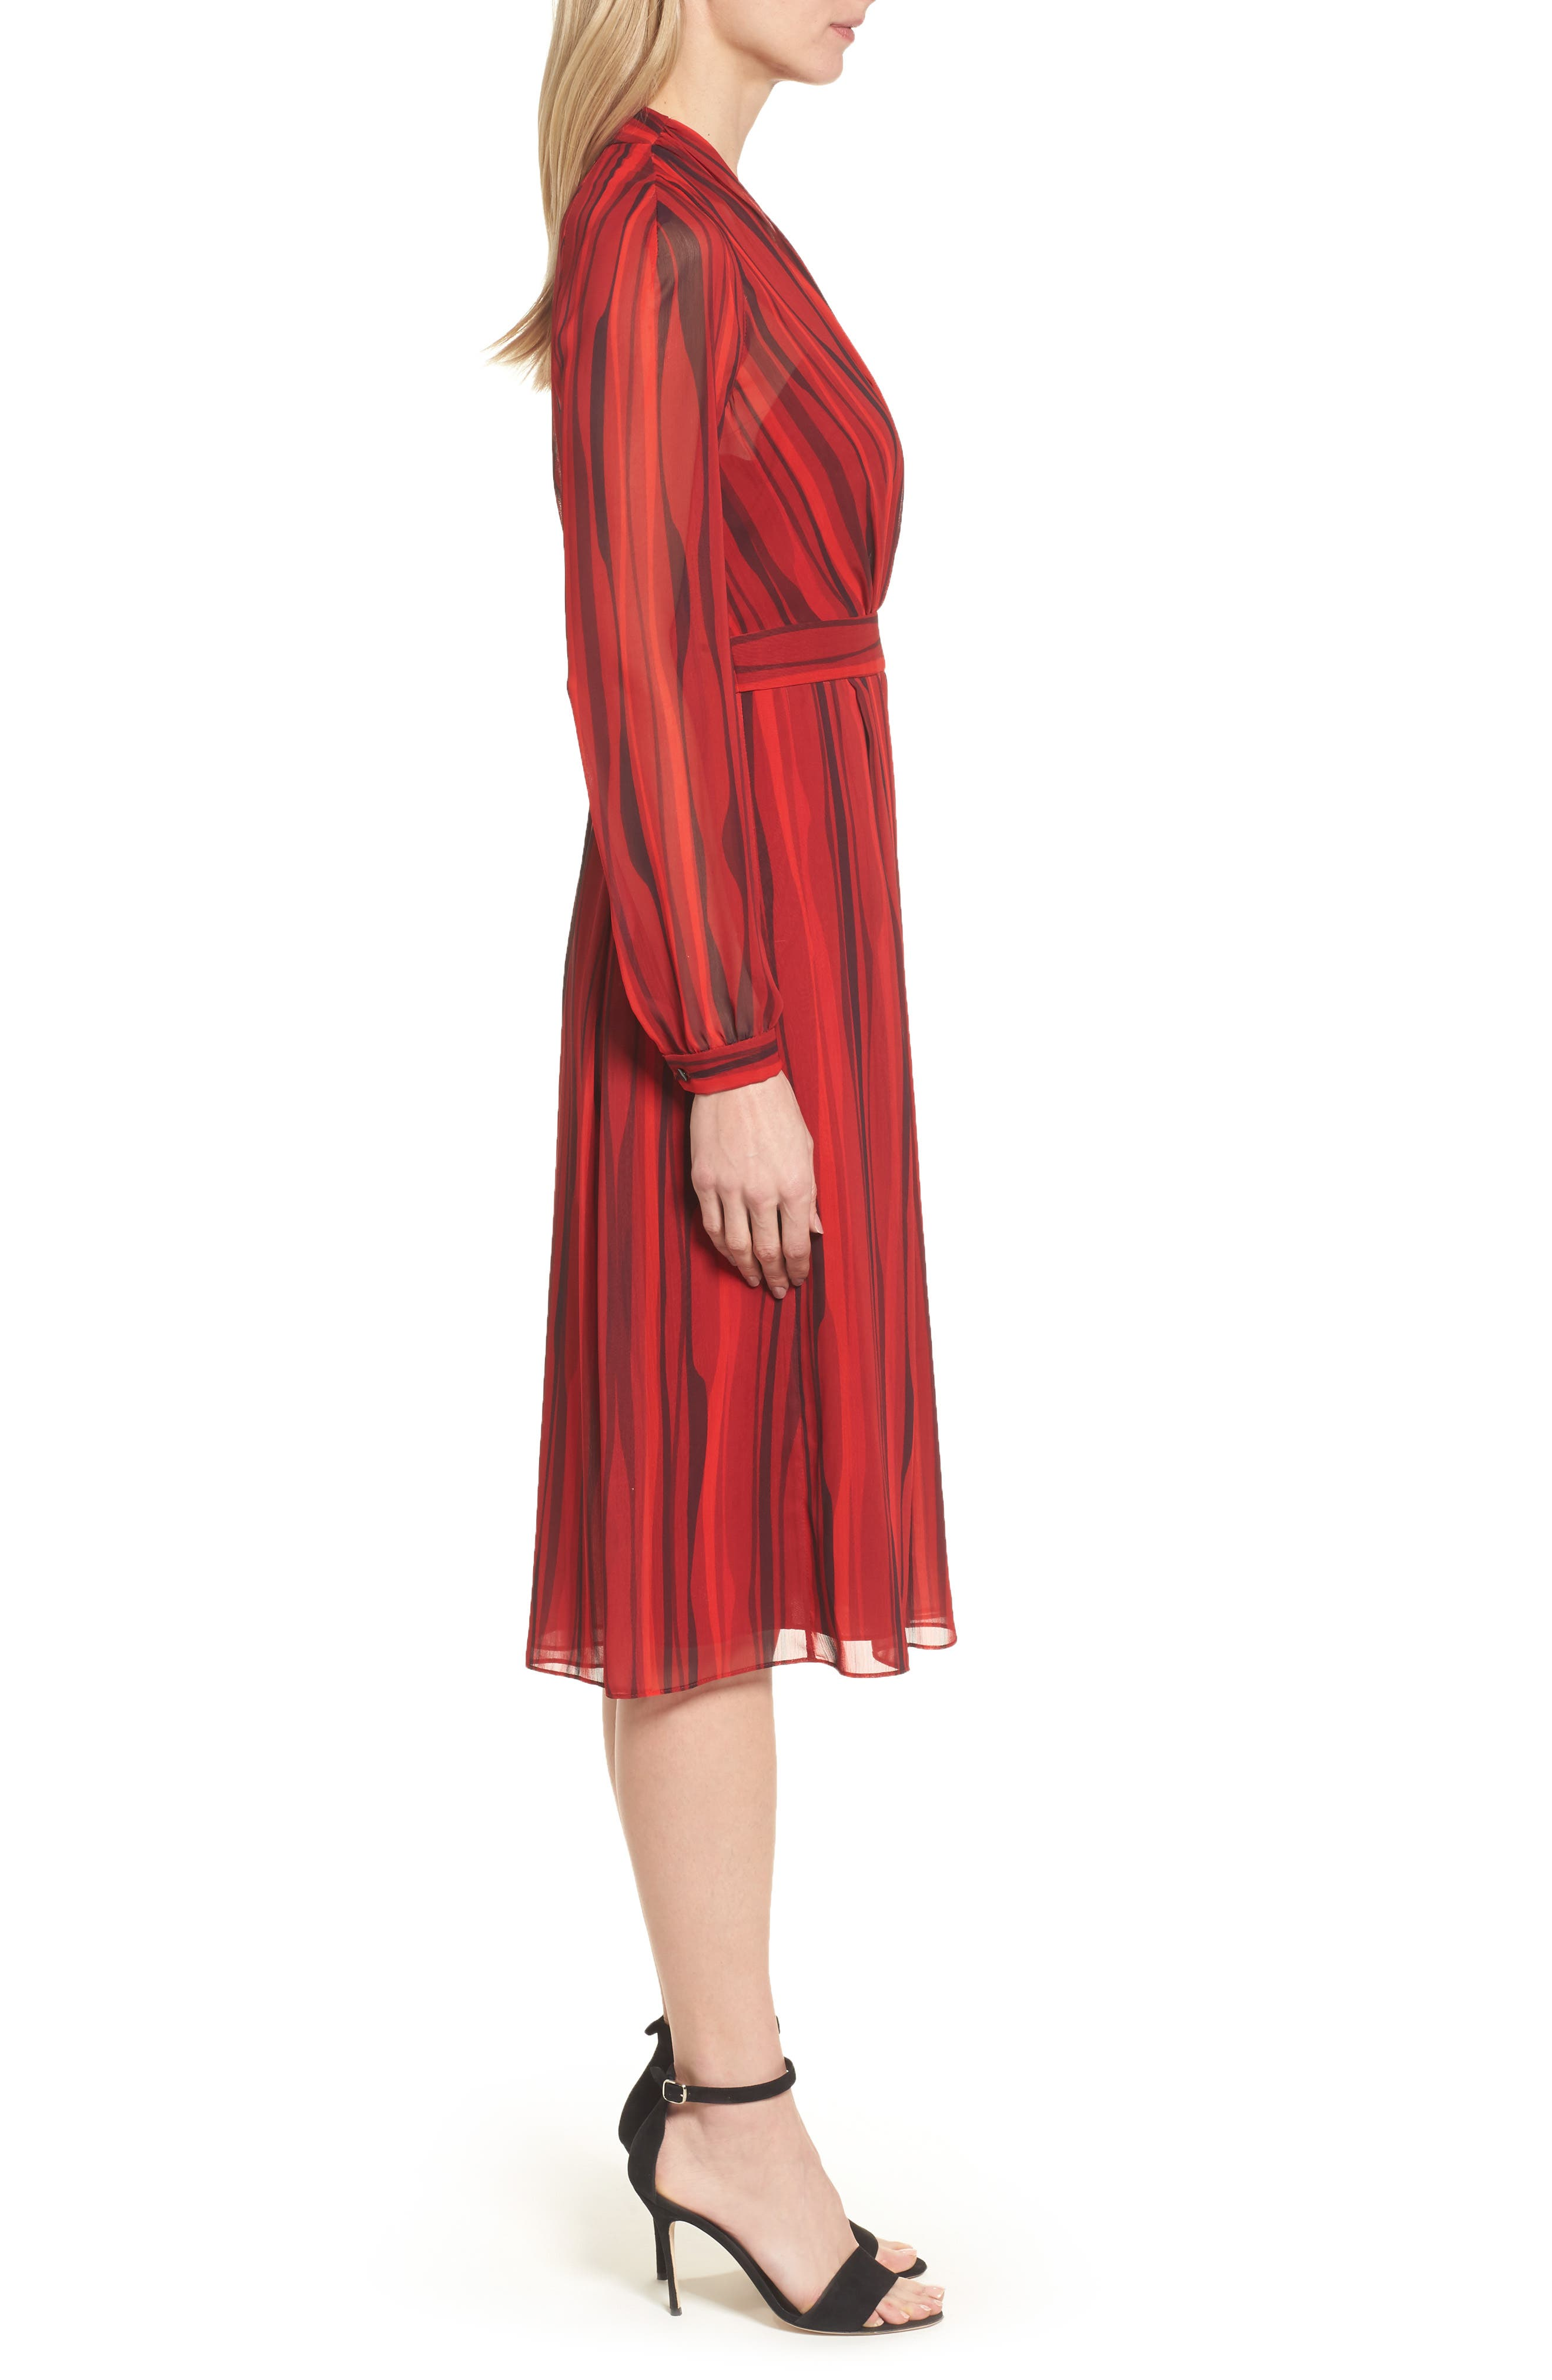 Fit & Flare Dress,                             Alternate thumbnail 3, color,                             Titian Red/ Black Combo